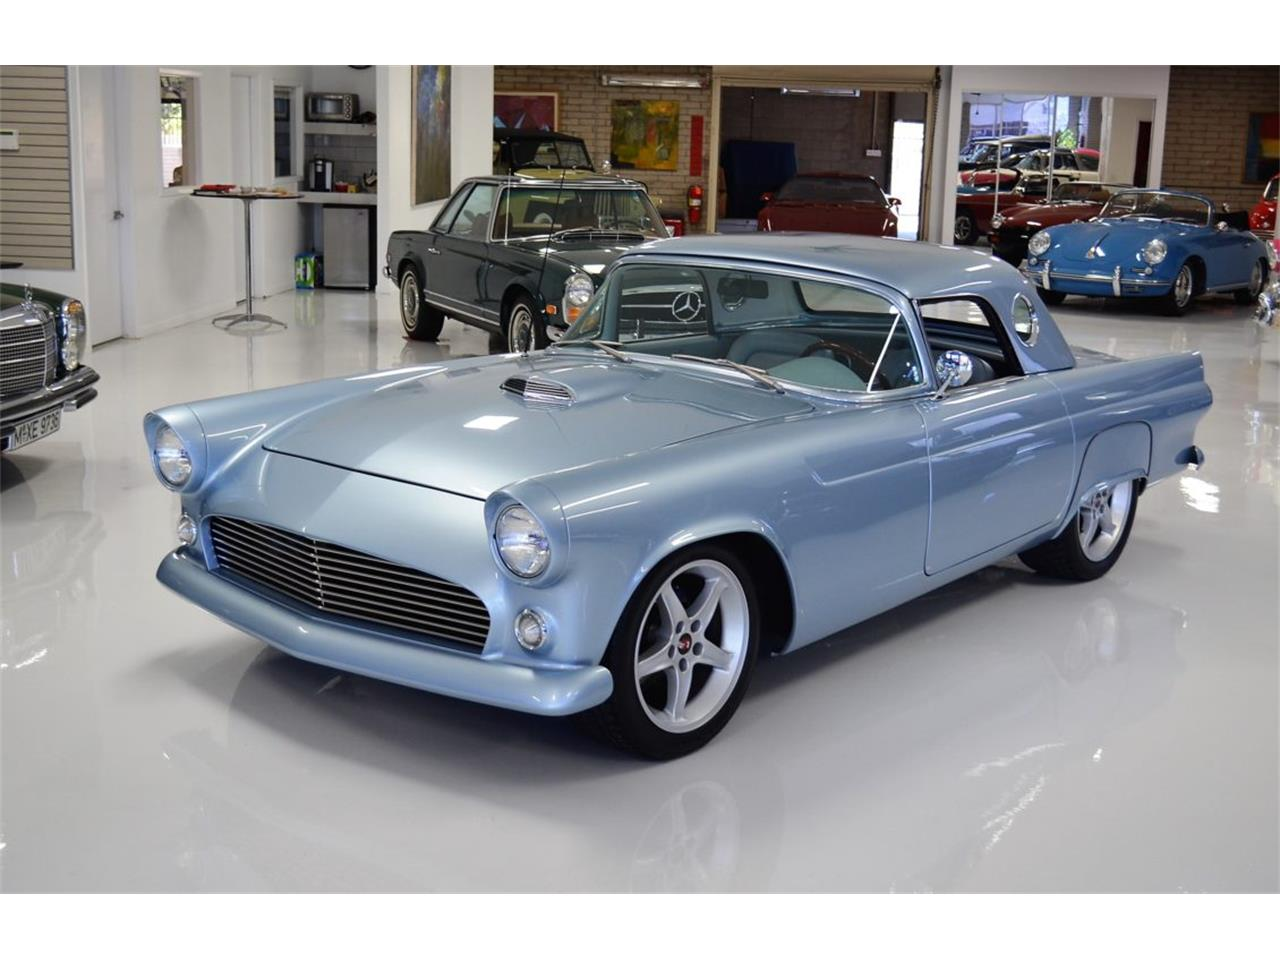 For Sale: 1955 Ford Thunderbird in Phoenix, Arizona